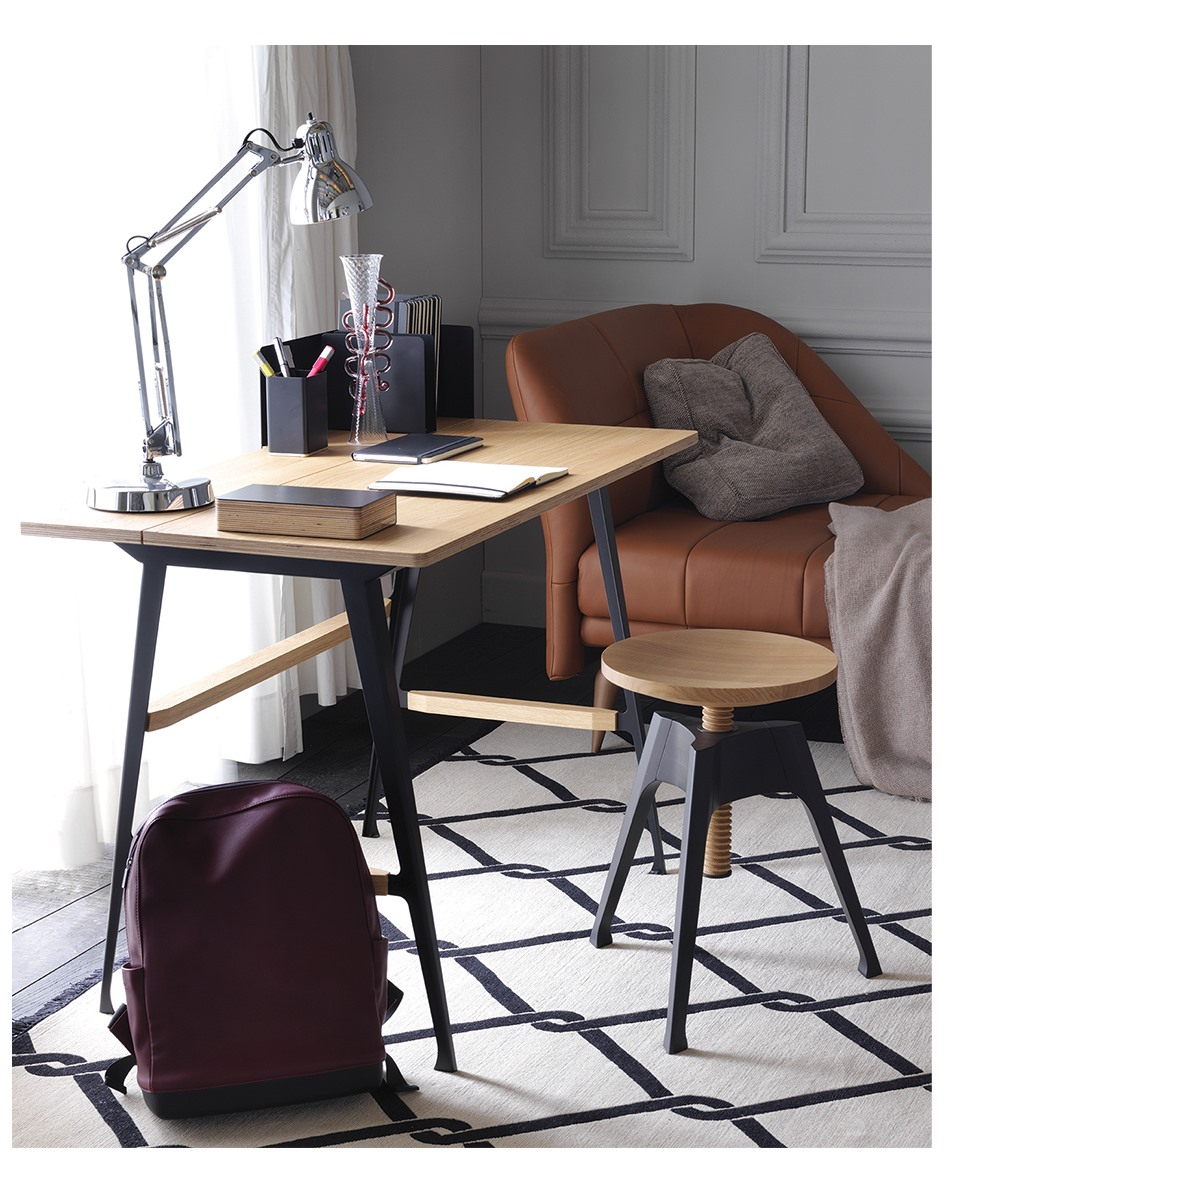 Contemporary Homeoffice Desk: FONTANAARTE: More Than Any Other Lamp, The #Naska L